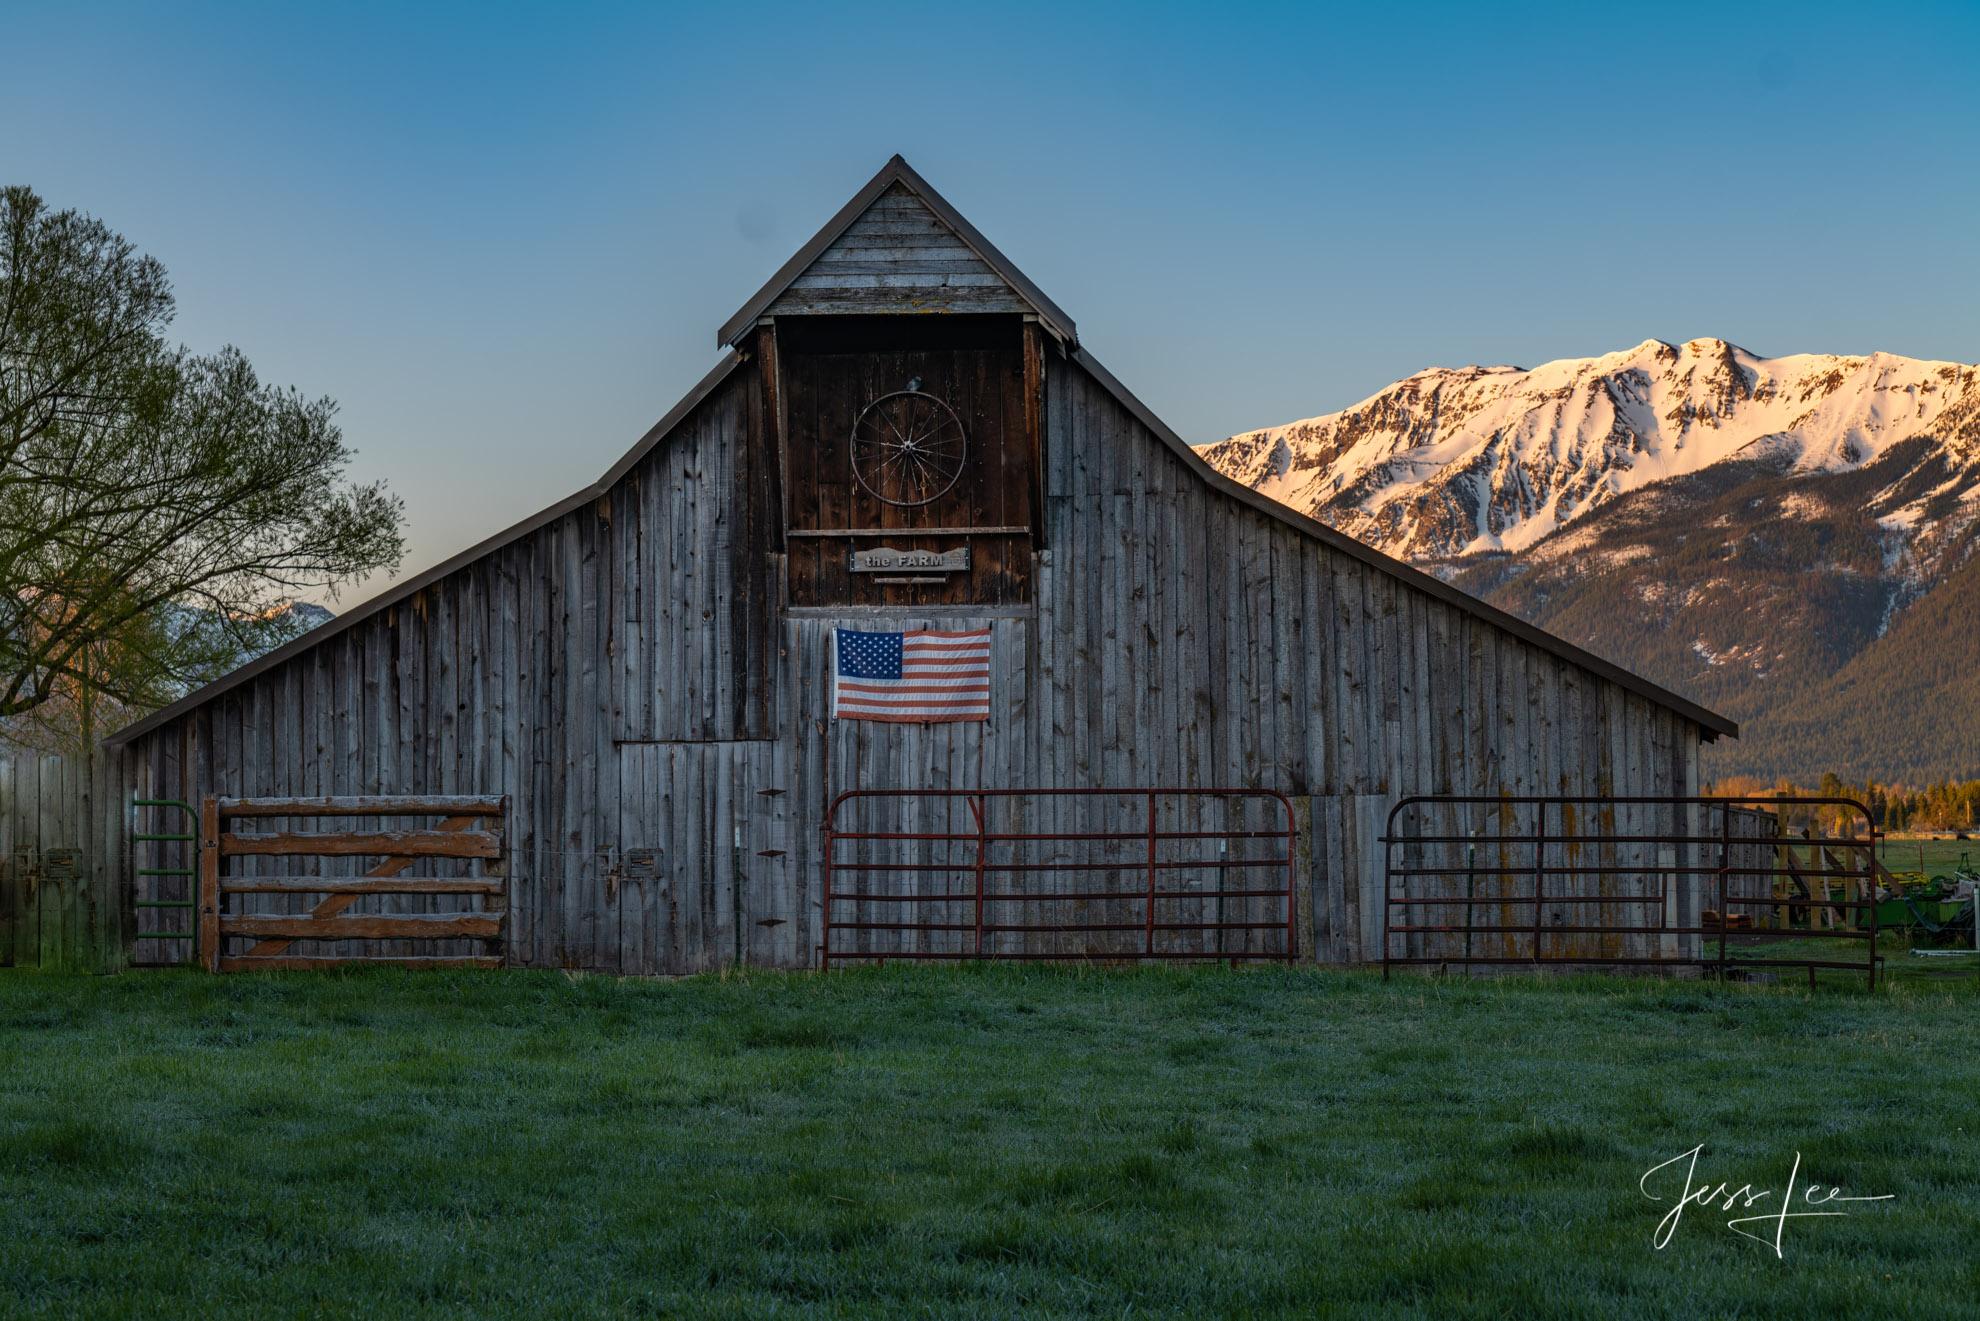 The American Barn. Fine Art prints of this iconic rustic barn in Rural America.